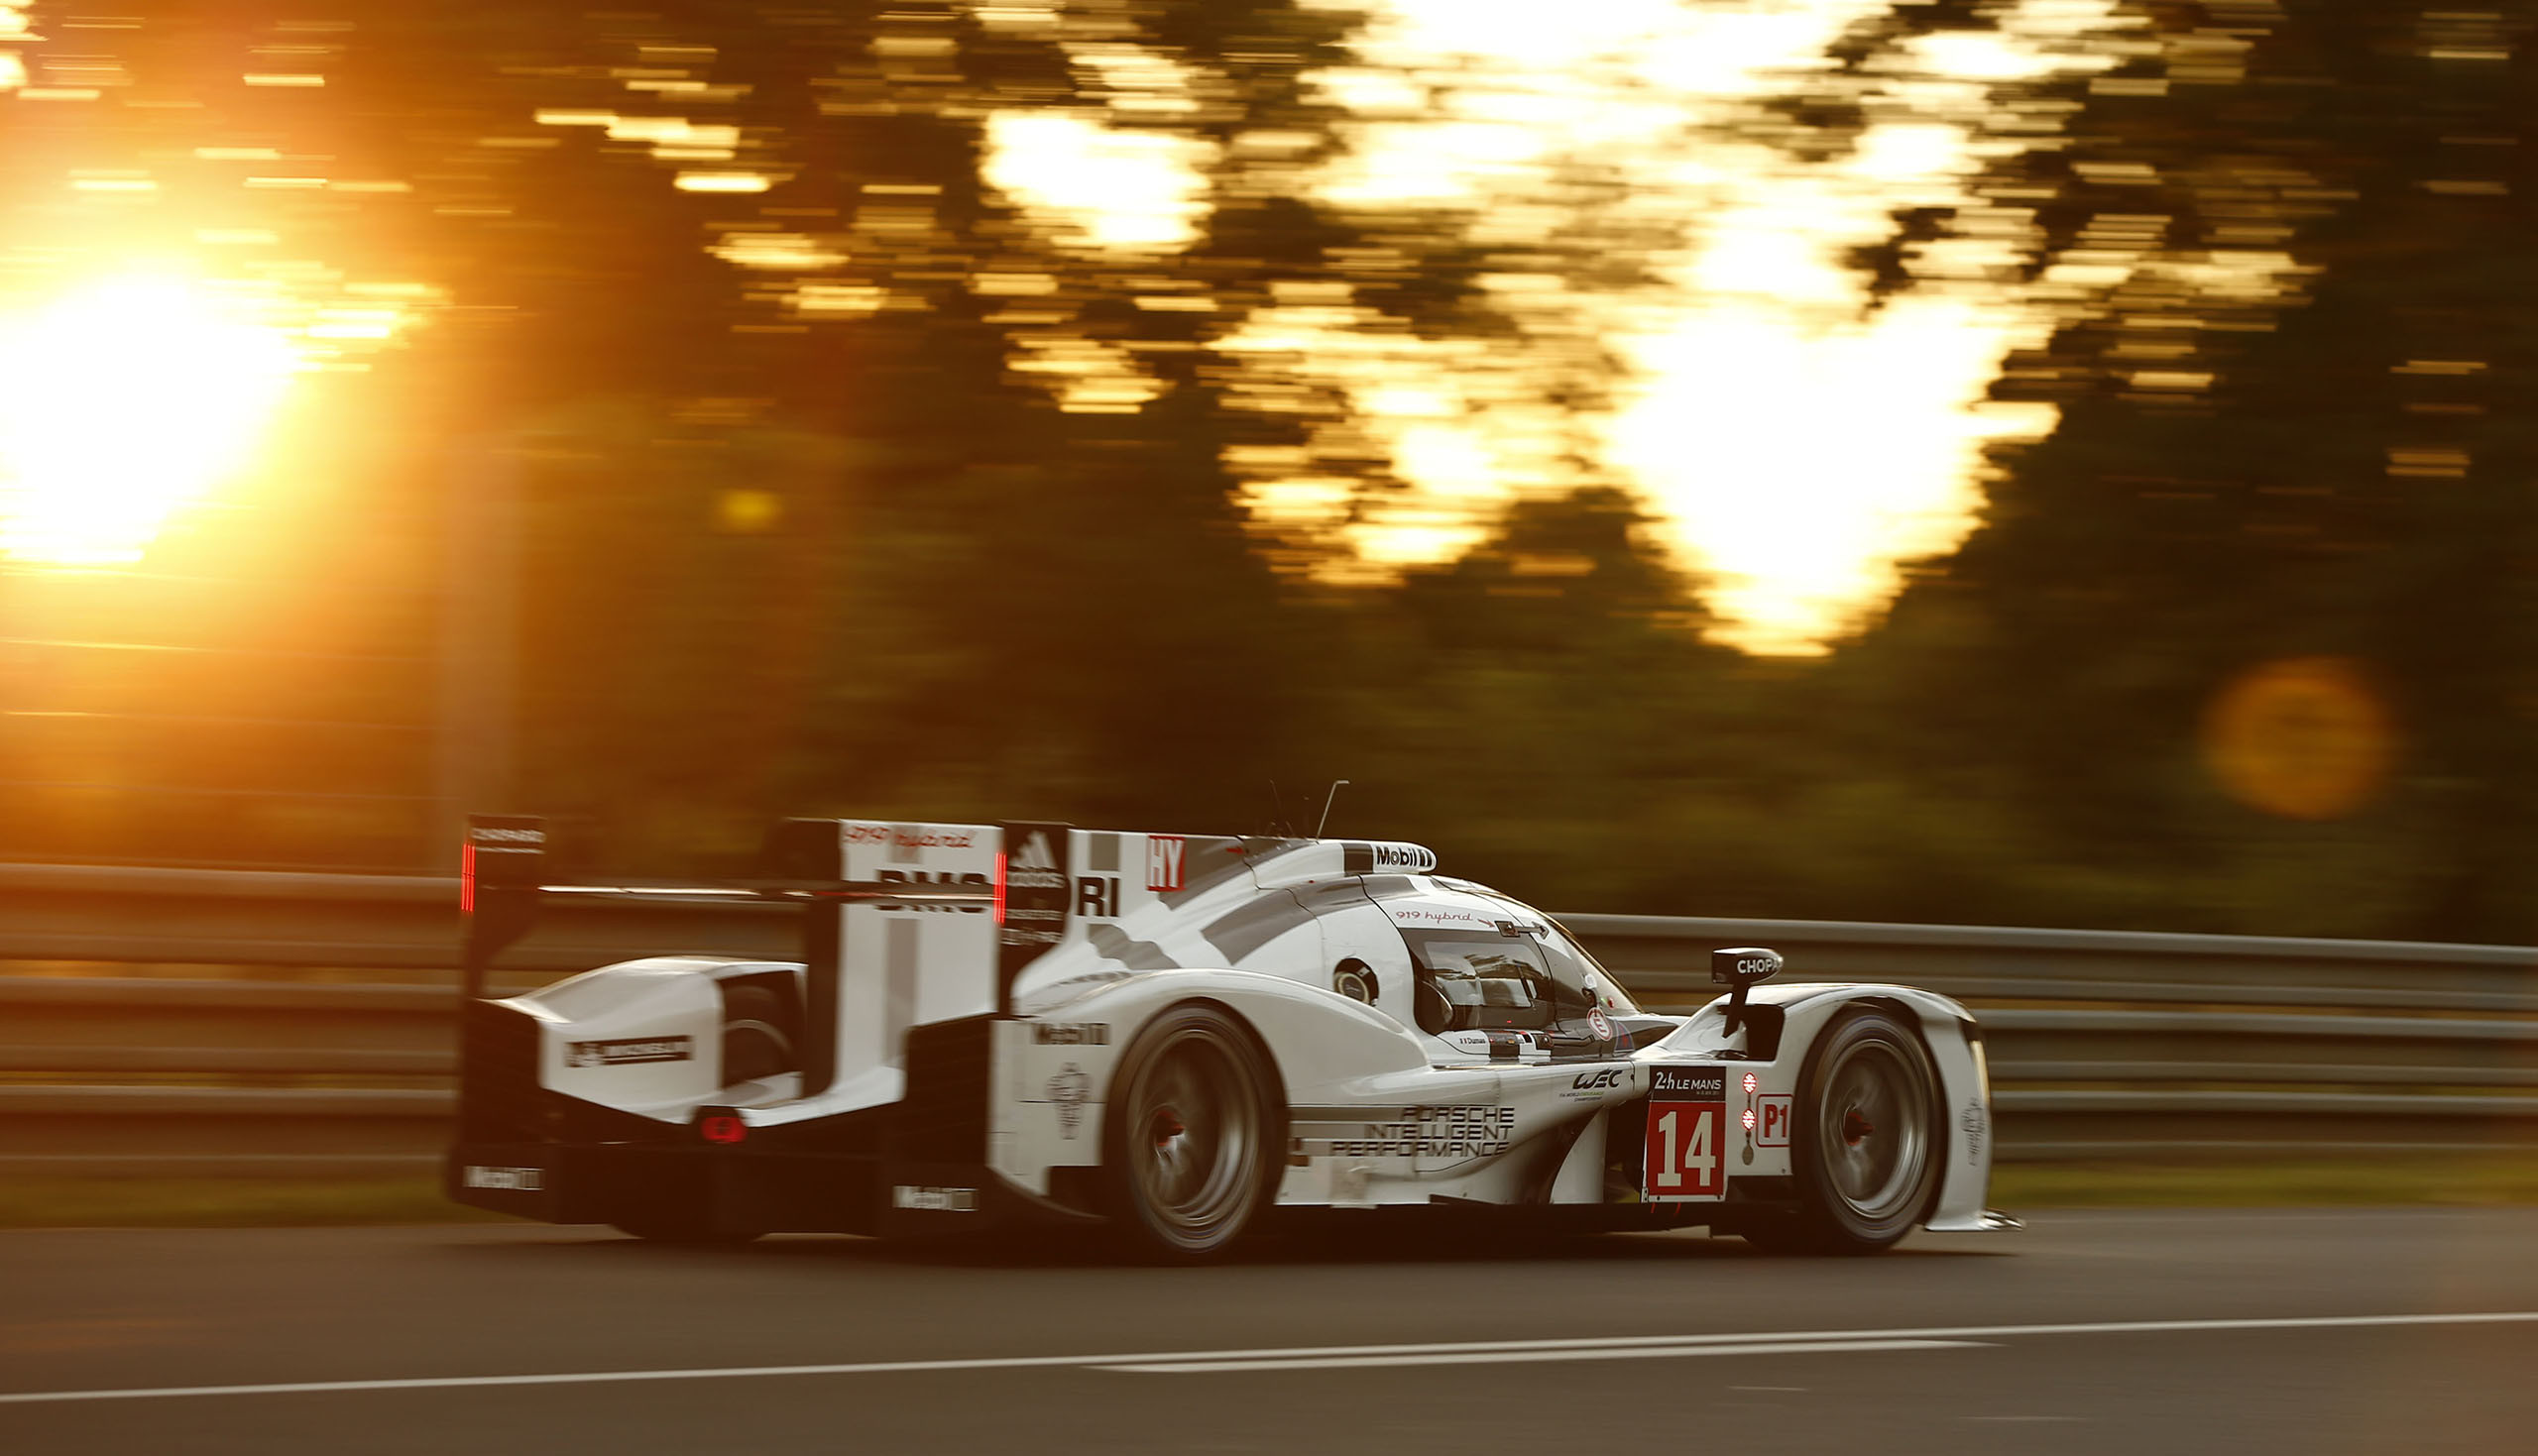 le mans wallpapers (65+ images)